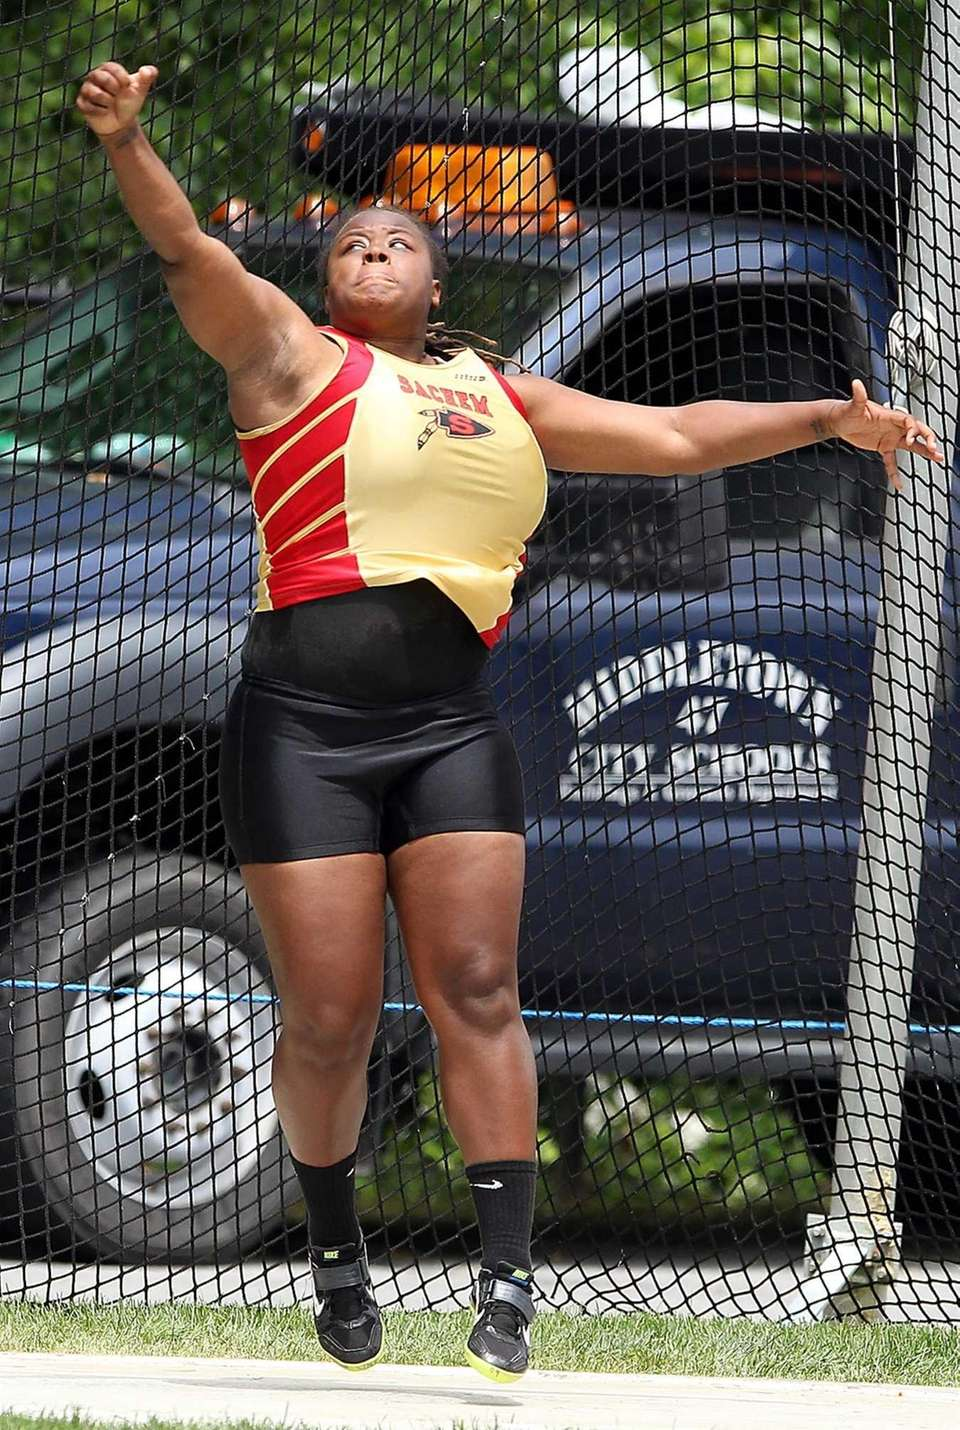 Sachem East's Diamond Jackson takes first in the